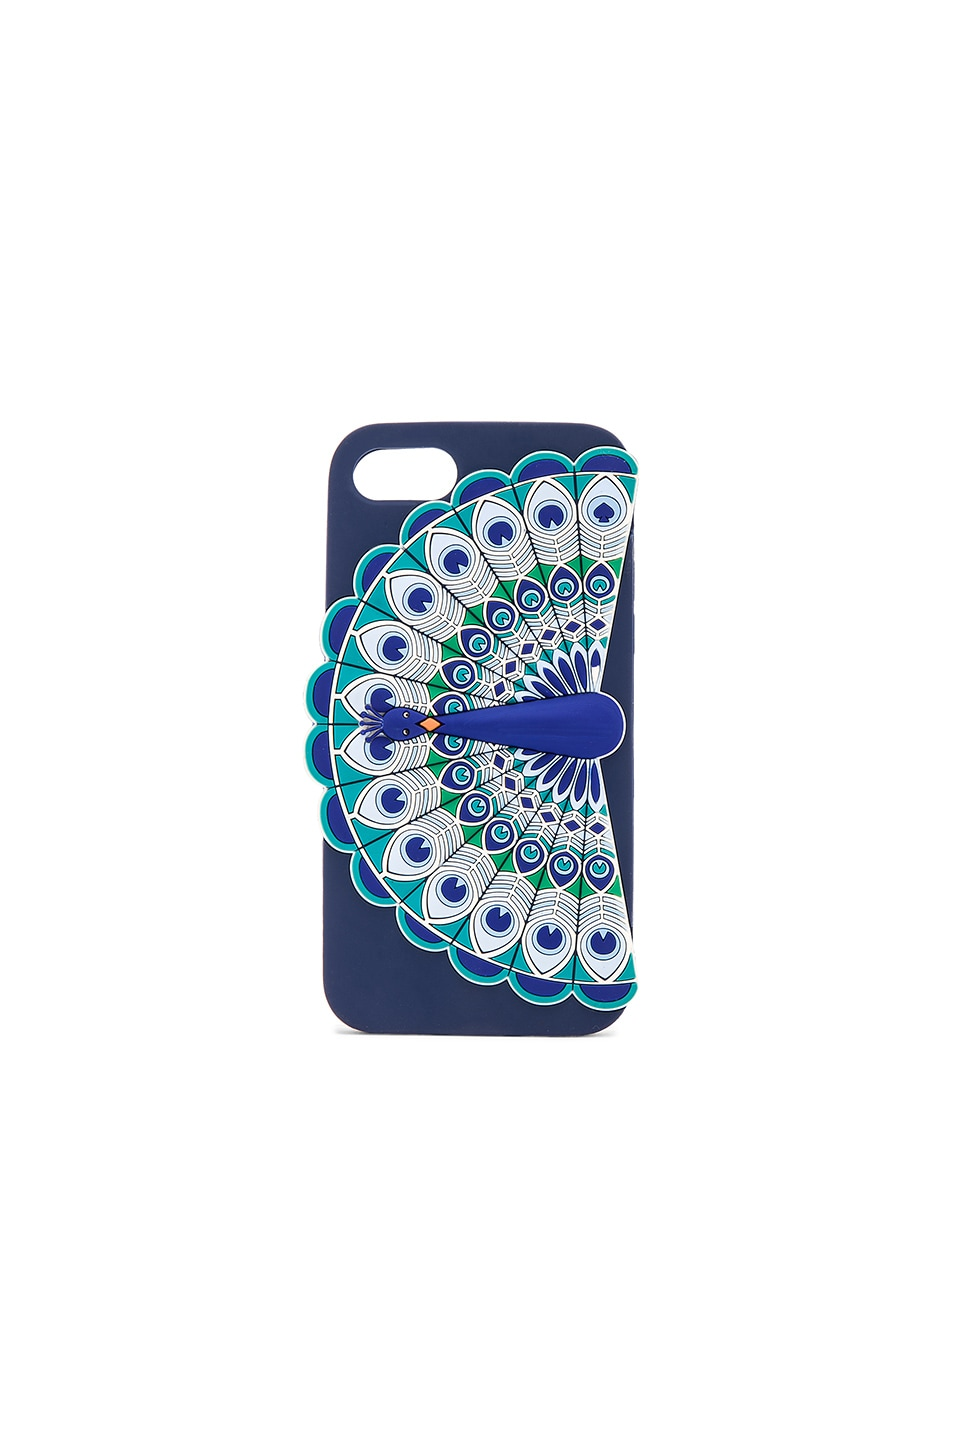 Silicone Peacock iPhone 7 Case by Kate Spade New York